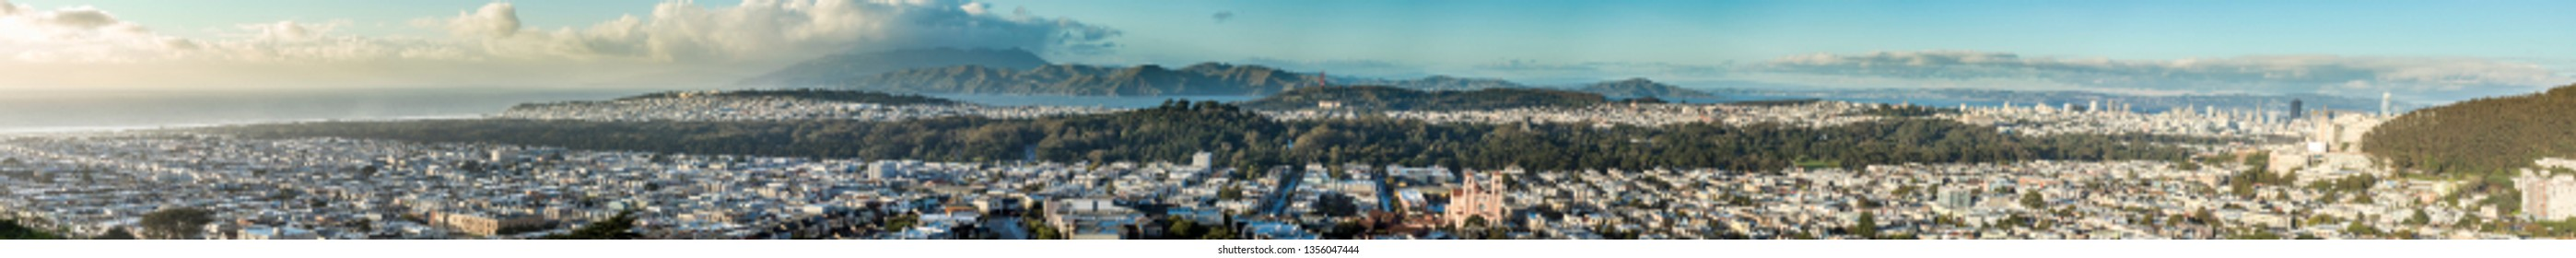 180 degree panorama of San Francisco from downtown to the Pacific Ocean.